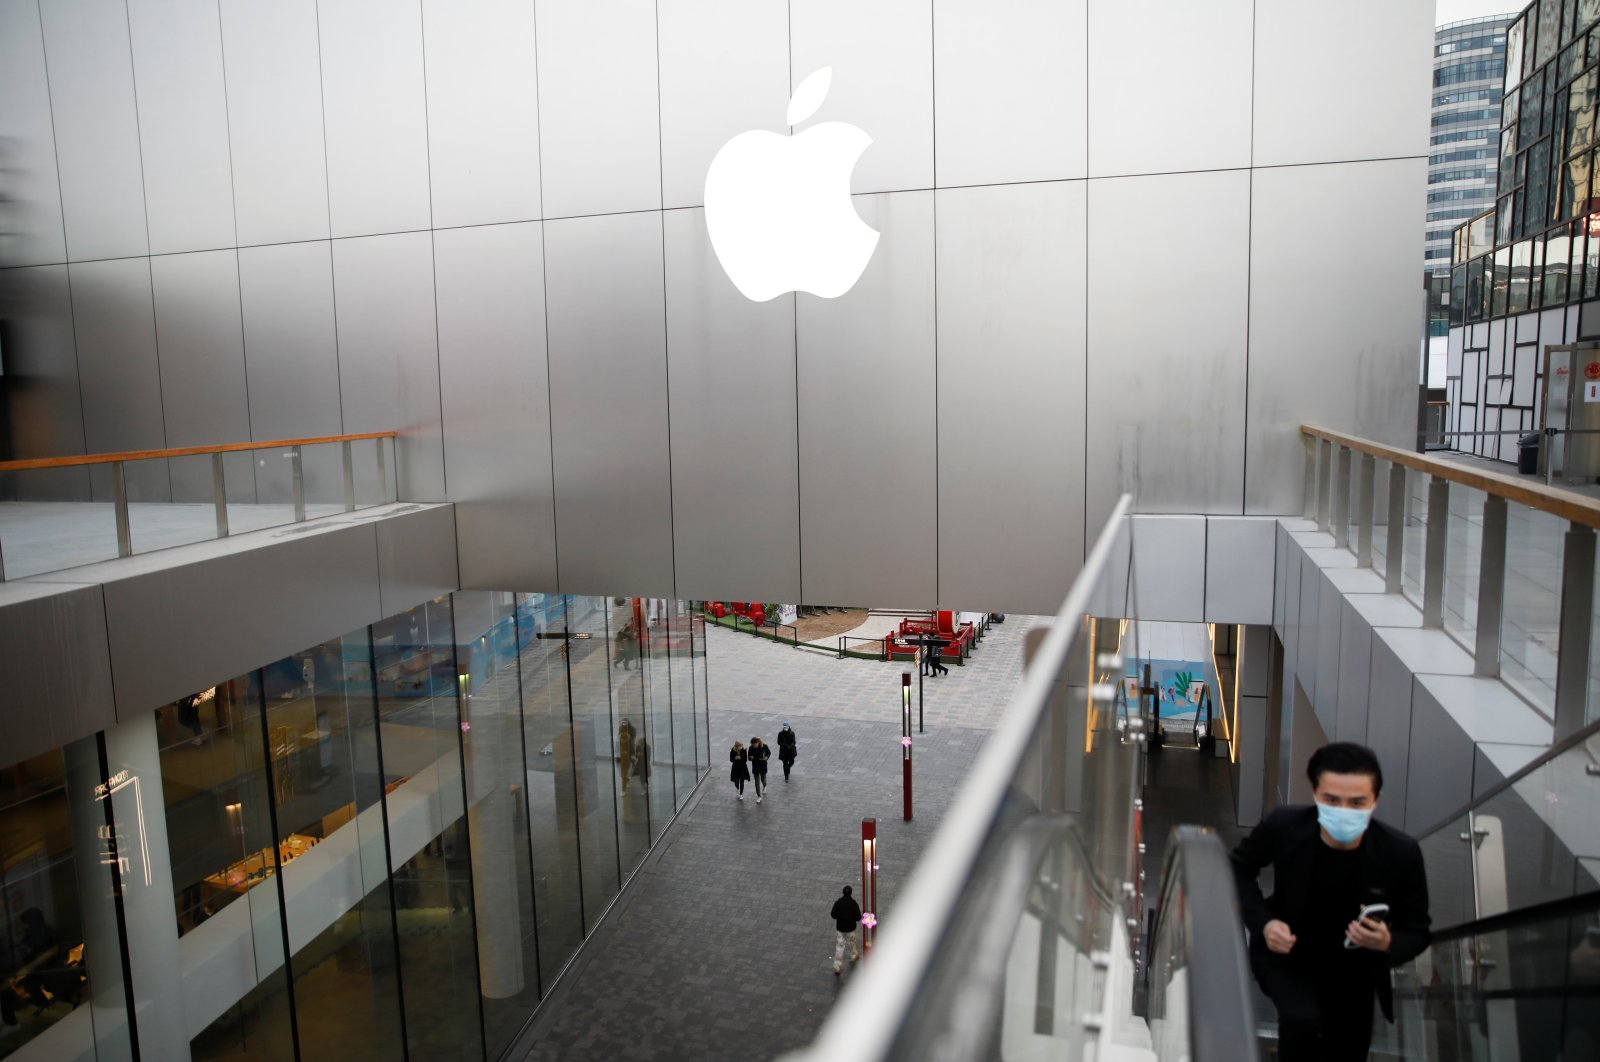 People wearing masks walk past an Apple store at a shopping mall, as the country is hit by an outbreak of the coronavirus, in Beijing, China, Feb. 18, 2020. (Reuters Photo)